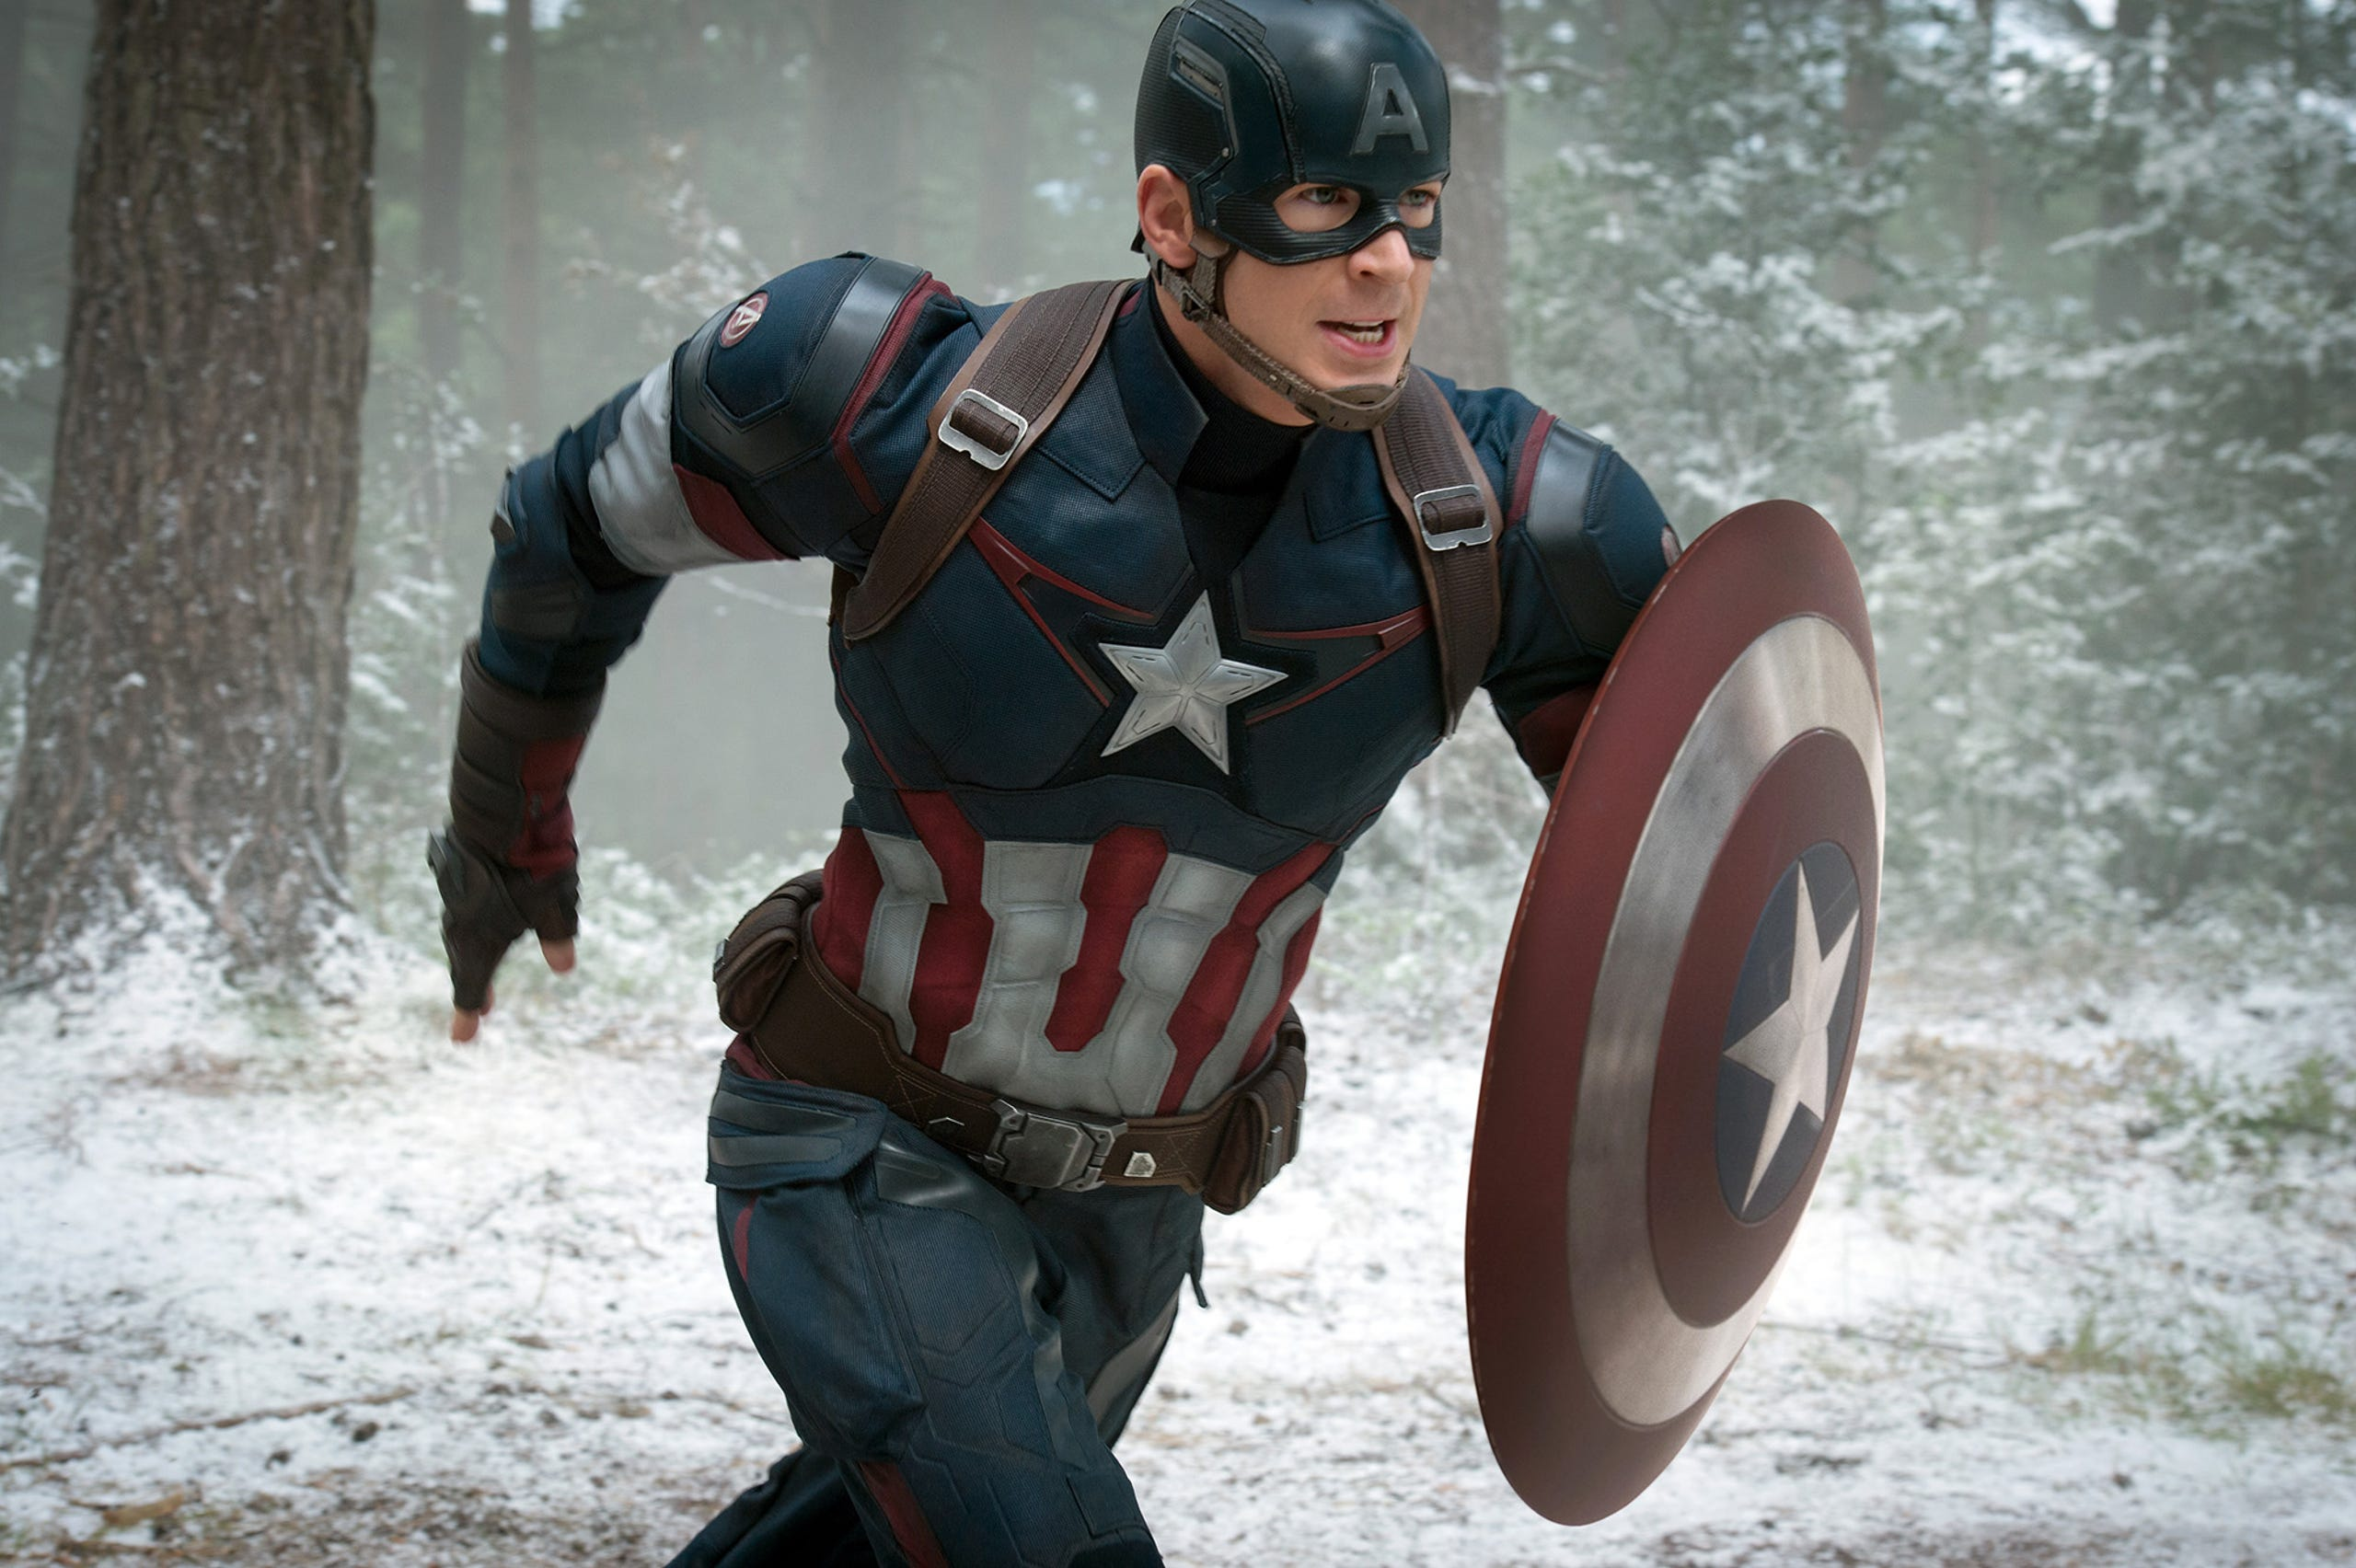 Avengers: Endgame': Must-see photos of Chris Evans as Captain America